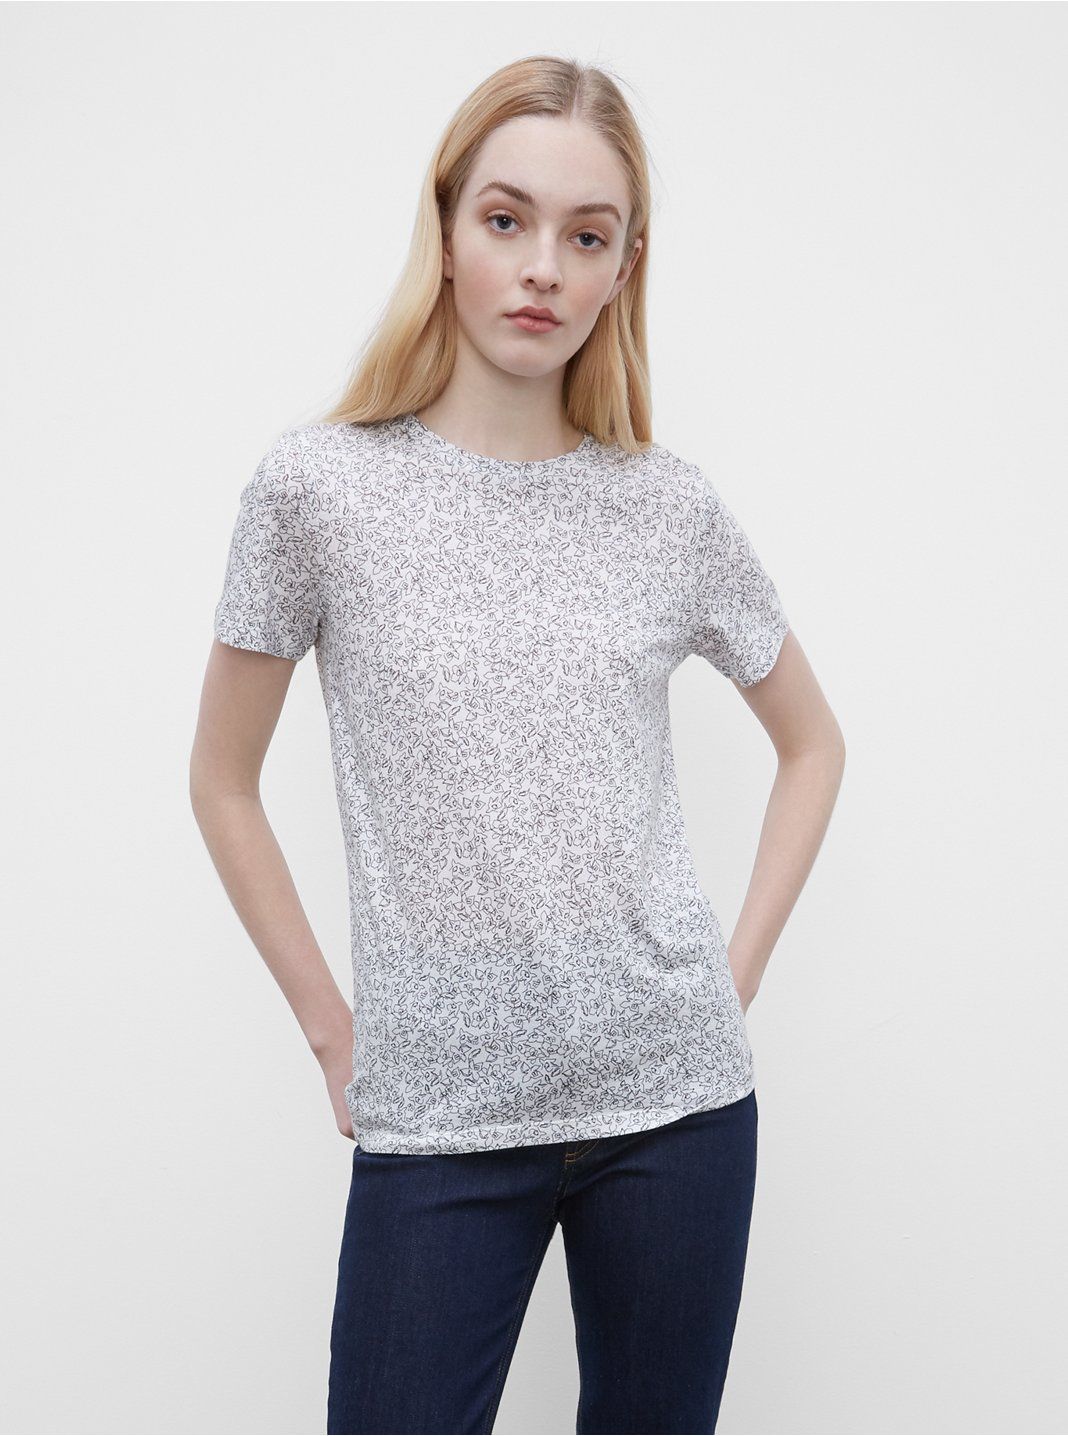 Floral Leary Tee